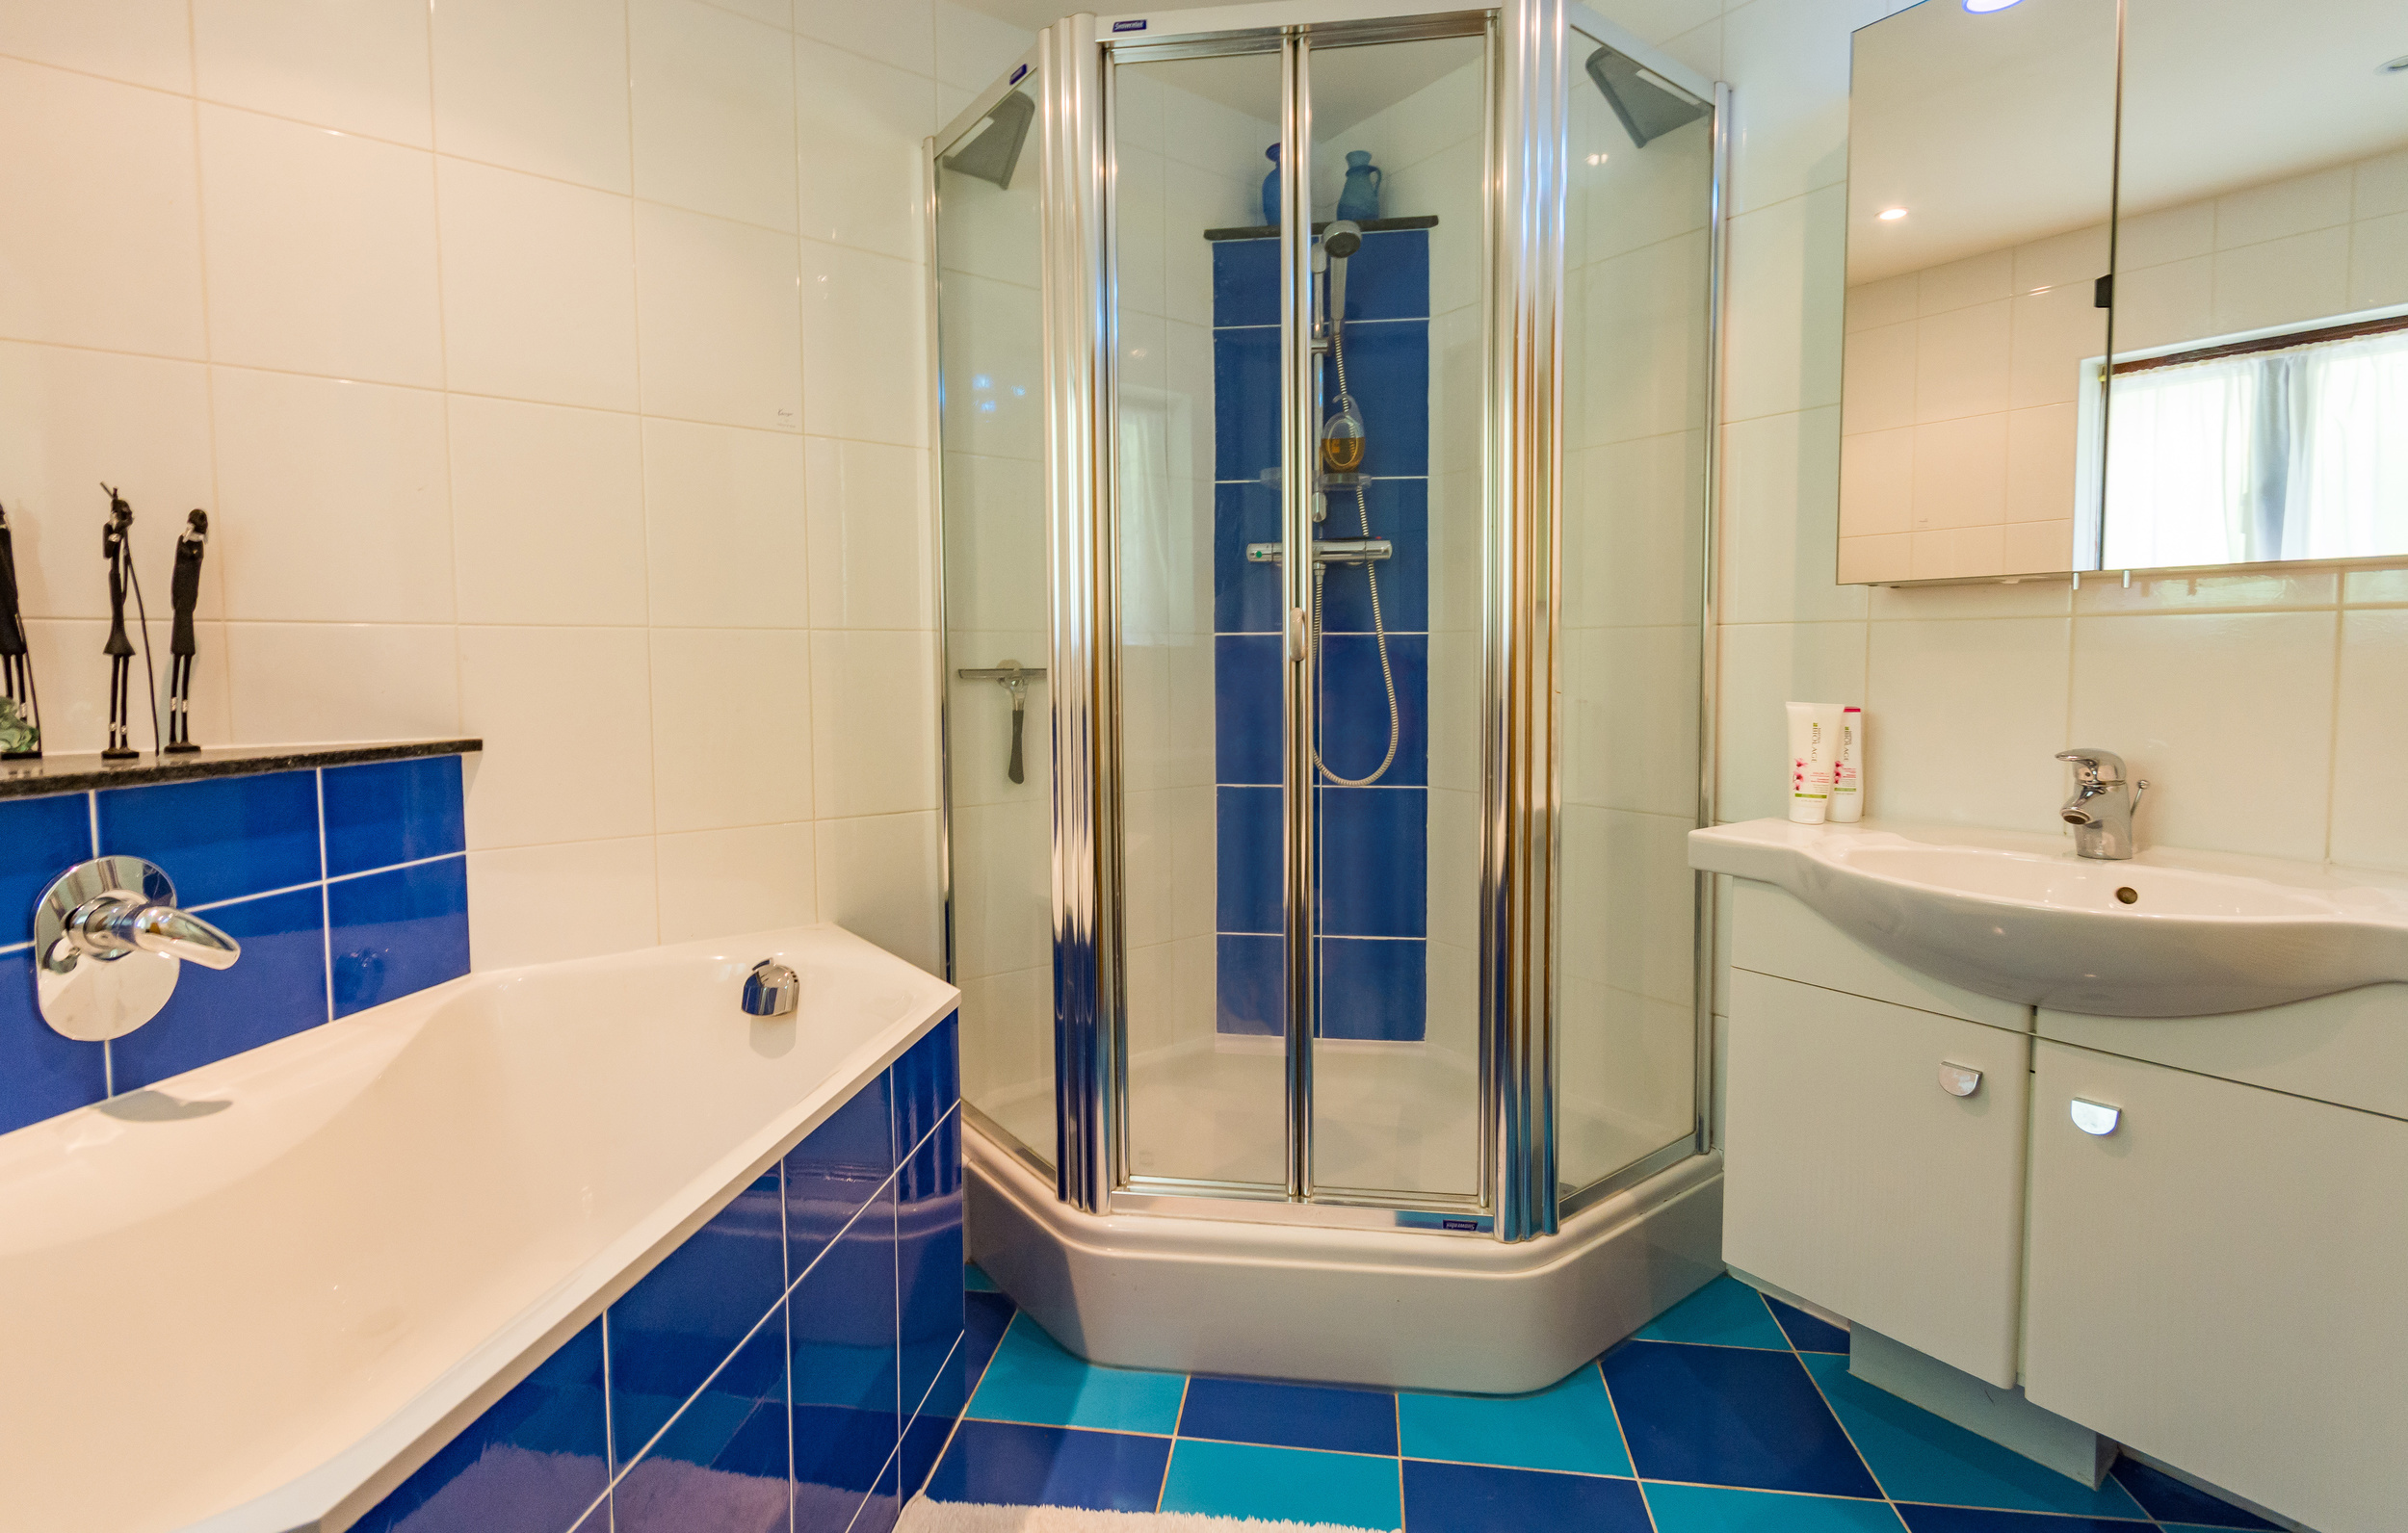 Family Bathroom 1 - Beech Nook Thornthwaite, Keswick Holidays Self Catering.jpg